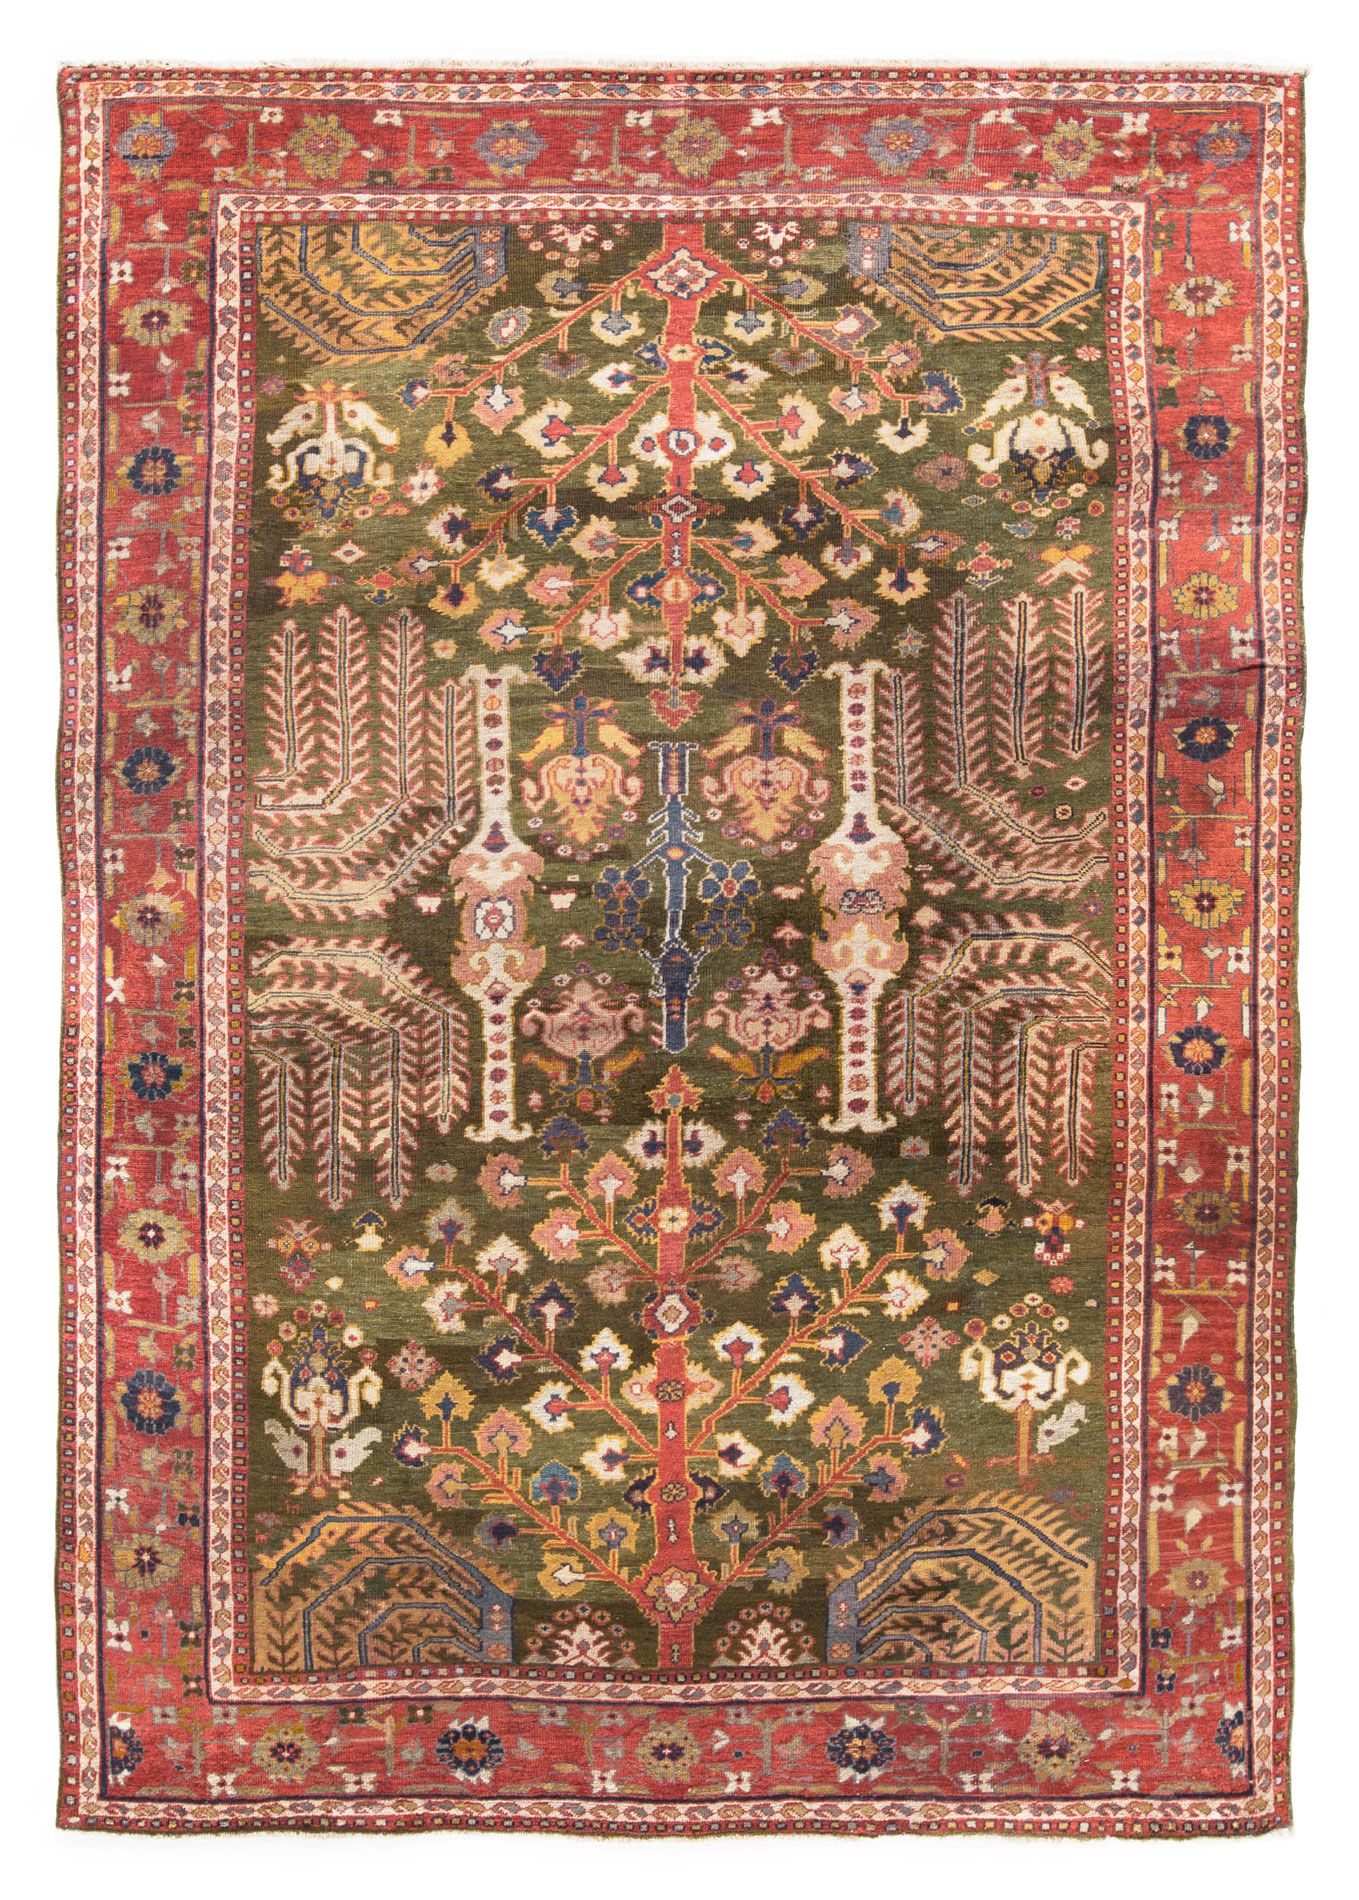 Home Interior Design Entrance Plano Dallas Review In 2020 Rugs Vintage Rugs Area Rugs